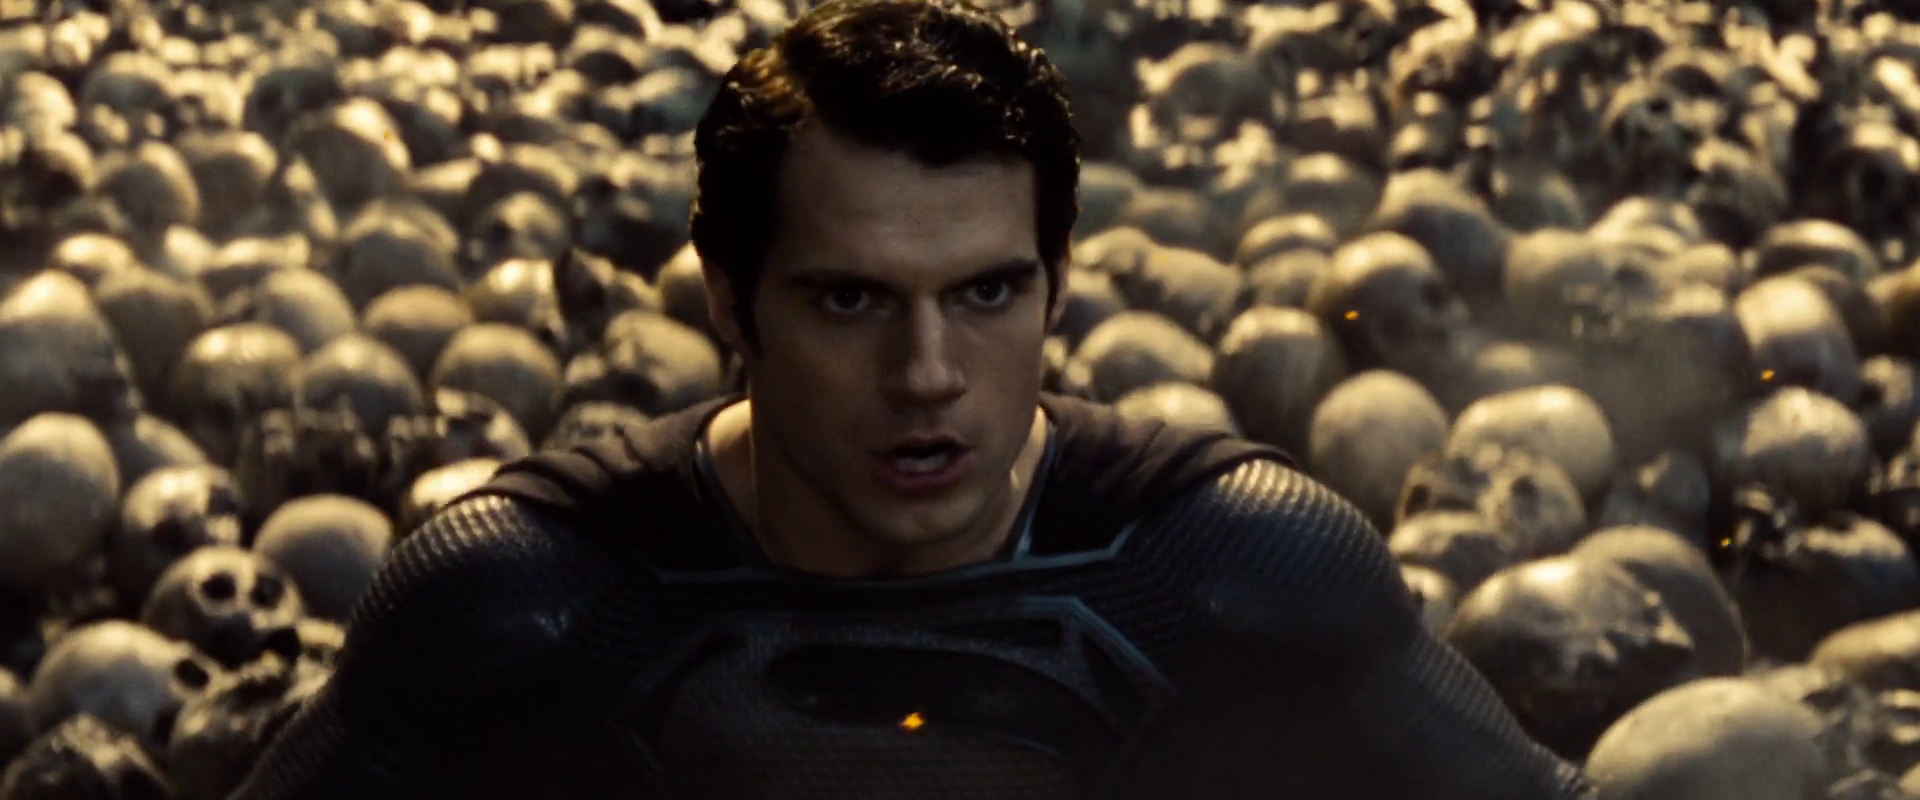 http://www.tikiwebgroup.com/zoom-comics/wp-content/uploads/sites/36/2014/04/Man-of-Steel-Skull-Scene-Wallpapers-9.png